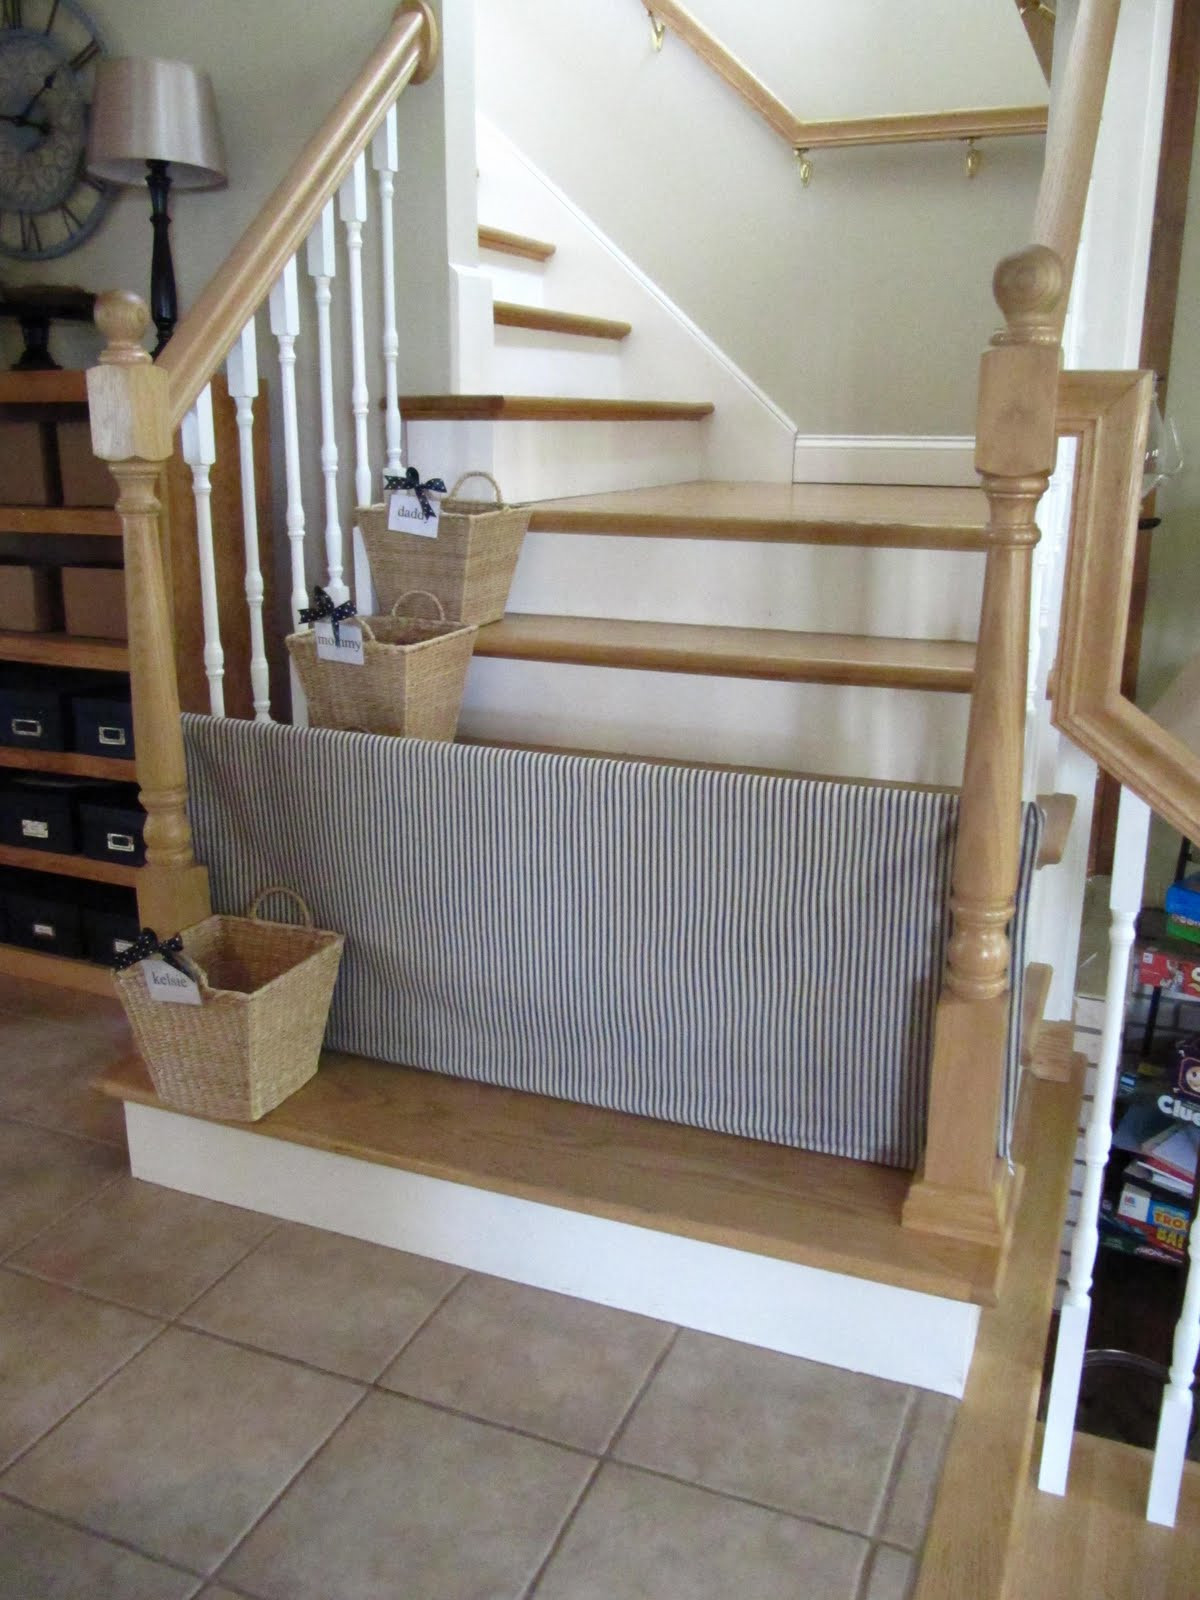 Best ideas about Baby Gate DIY . Save or Pin 10 DIY Baby Gates for Stairs Now.